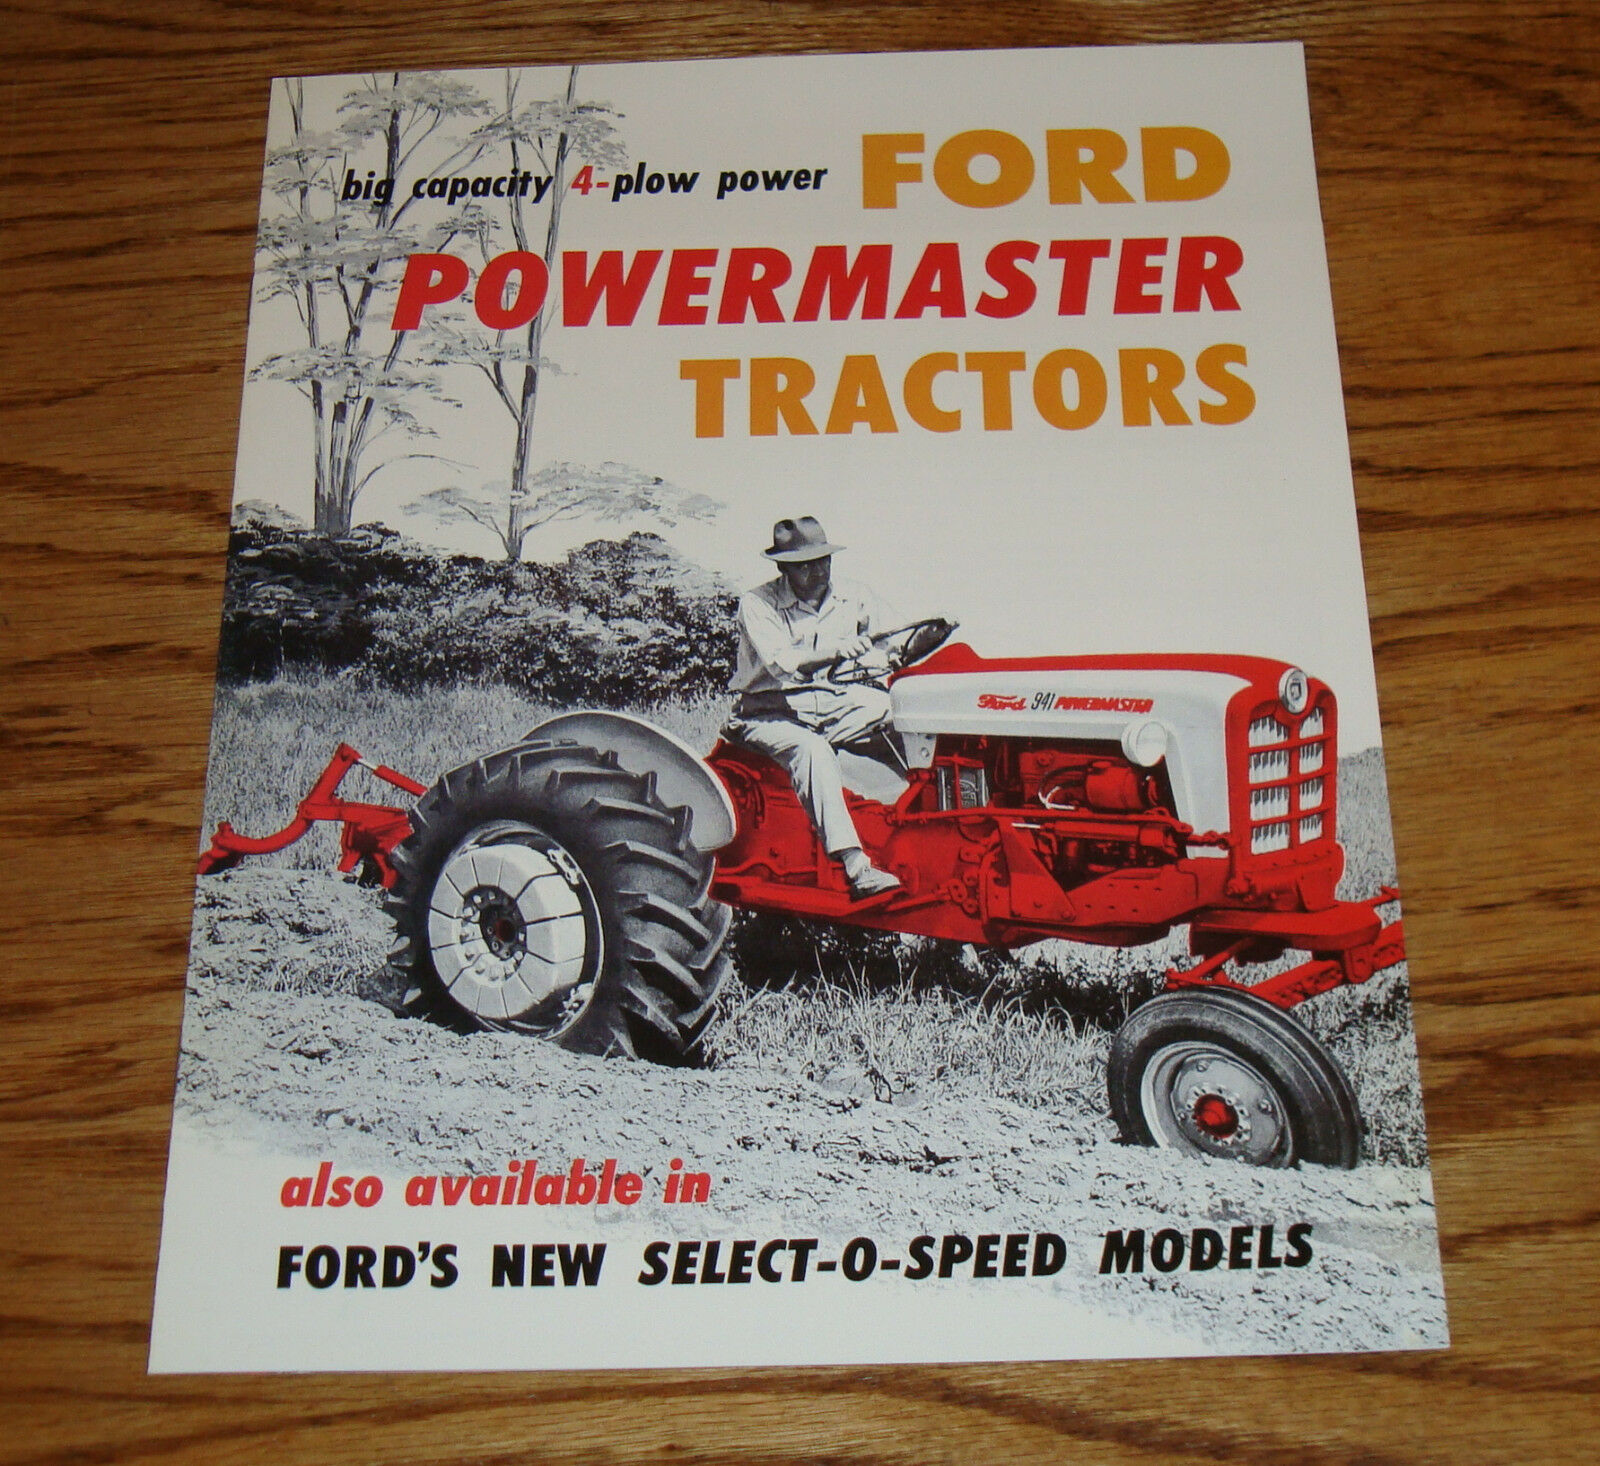 901 Ford Tractor Wiring Diagram Doing The New Way 3910 Schematic Diagrams Rh Ogmconsulting Co 3600 Diesel